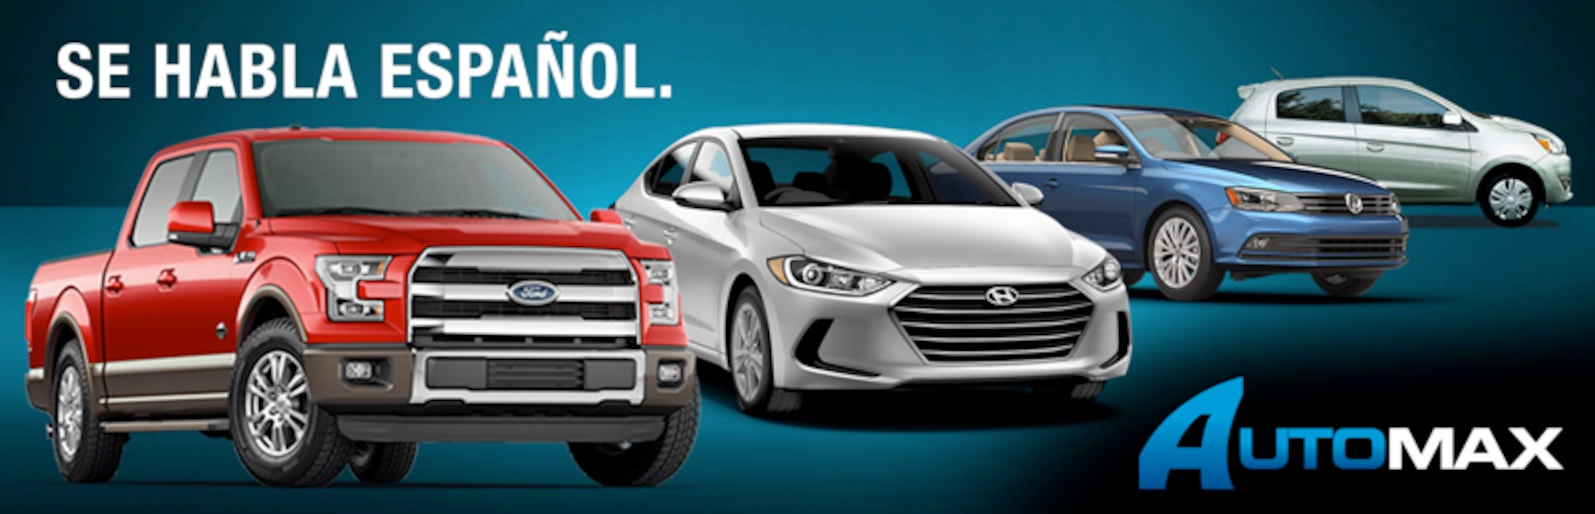 Automax Pre-Owned Center | New dealership in Killeen, TX 76543